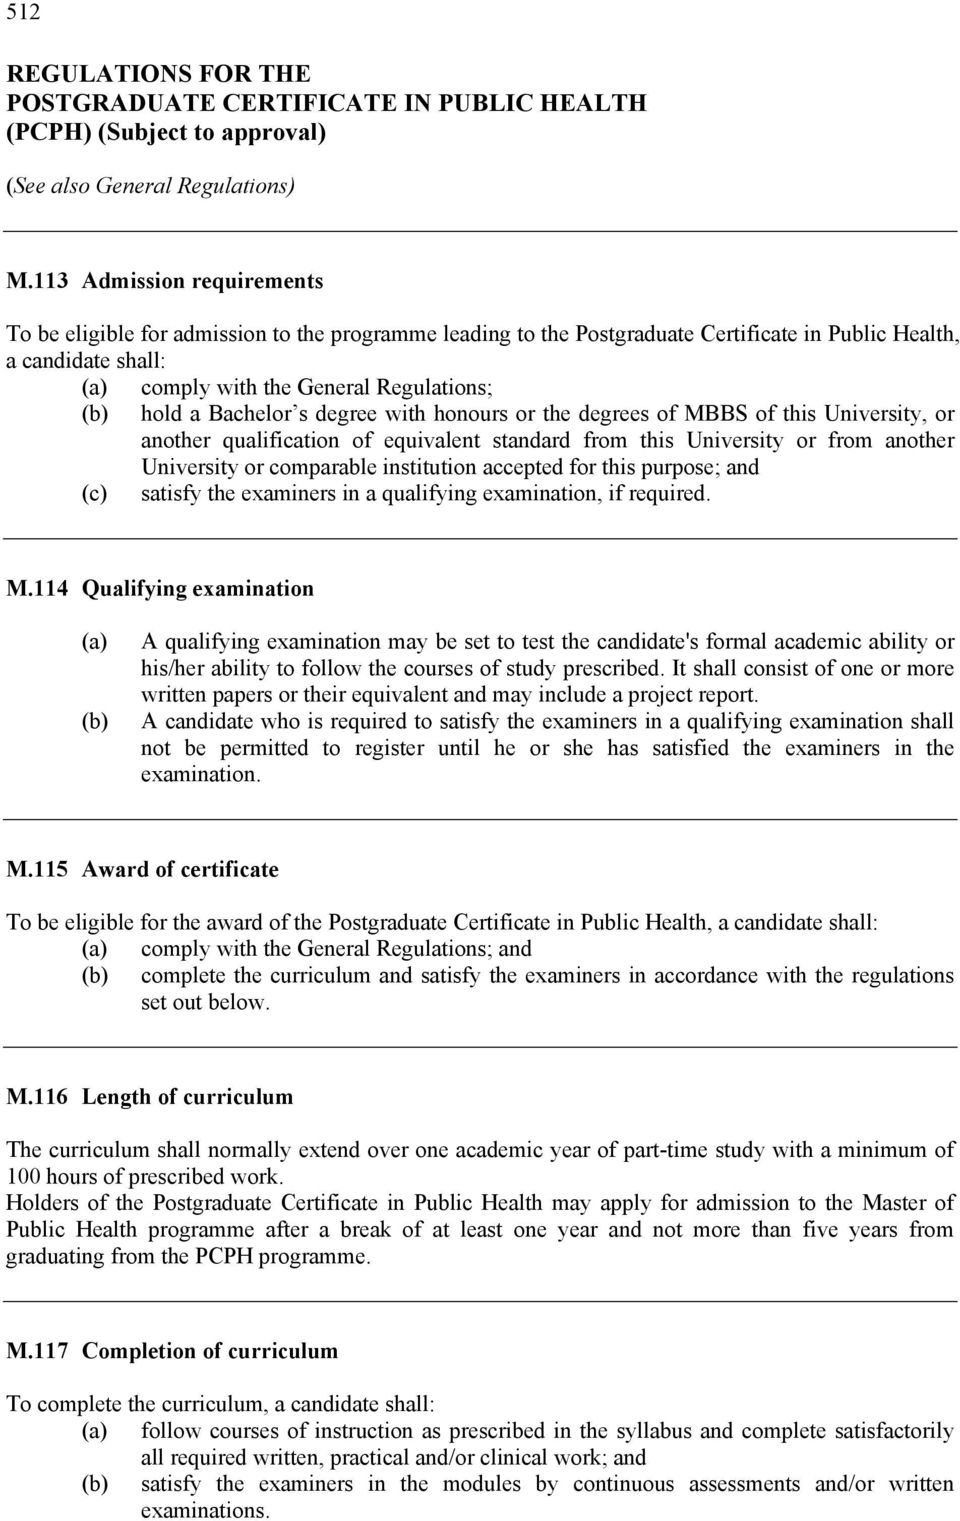 Regulations For The Postgraduate Certificate In Public Health Pcph